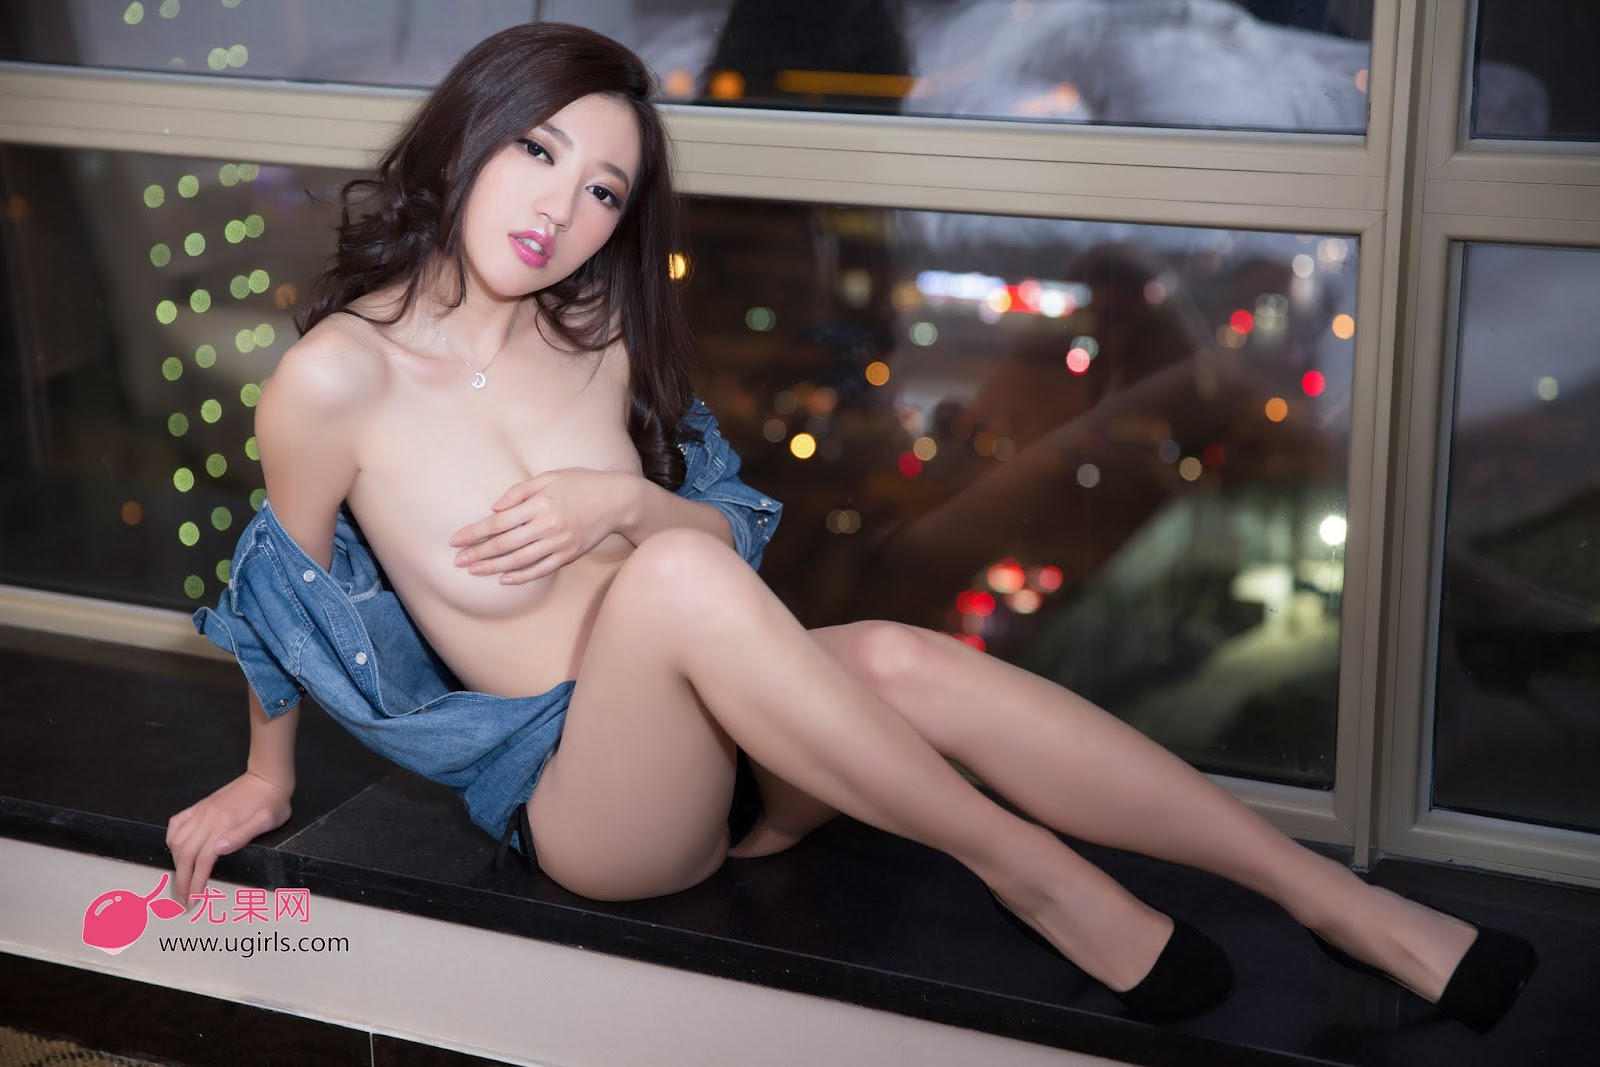 A14A5607 - Hot Model UGIRLS NO.8